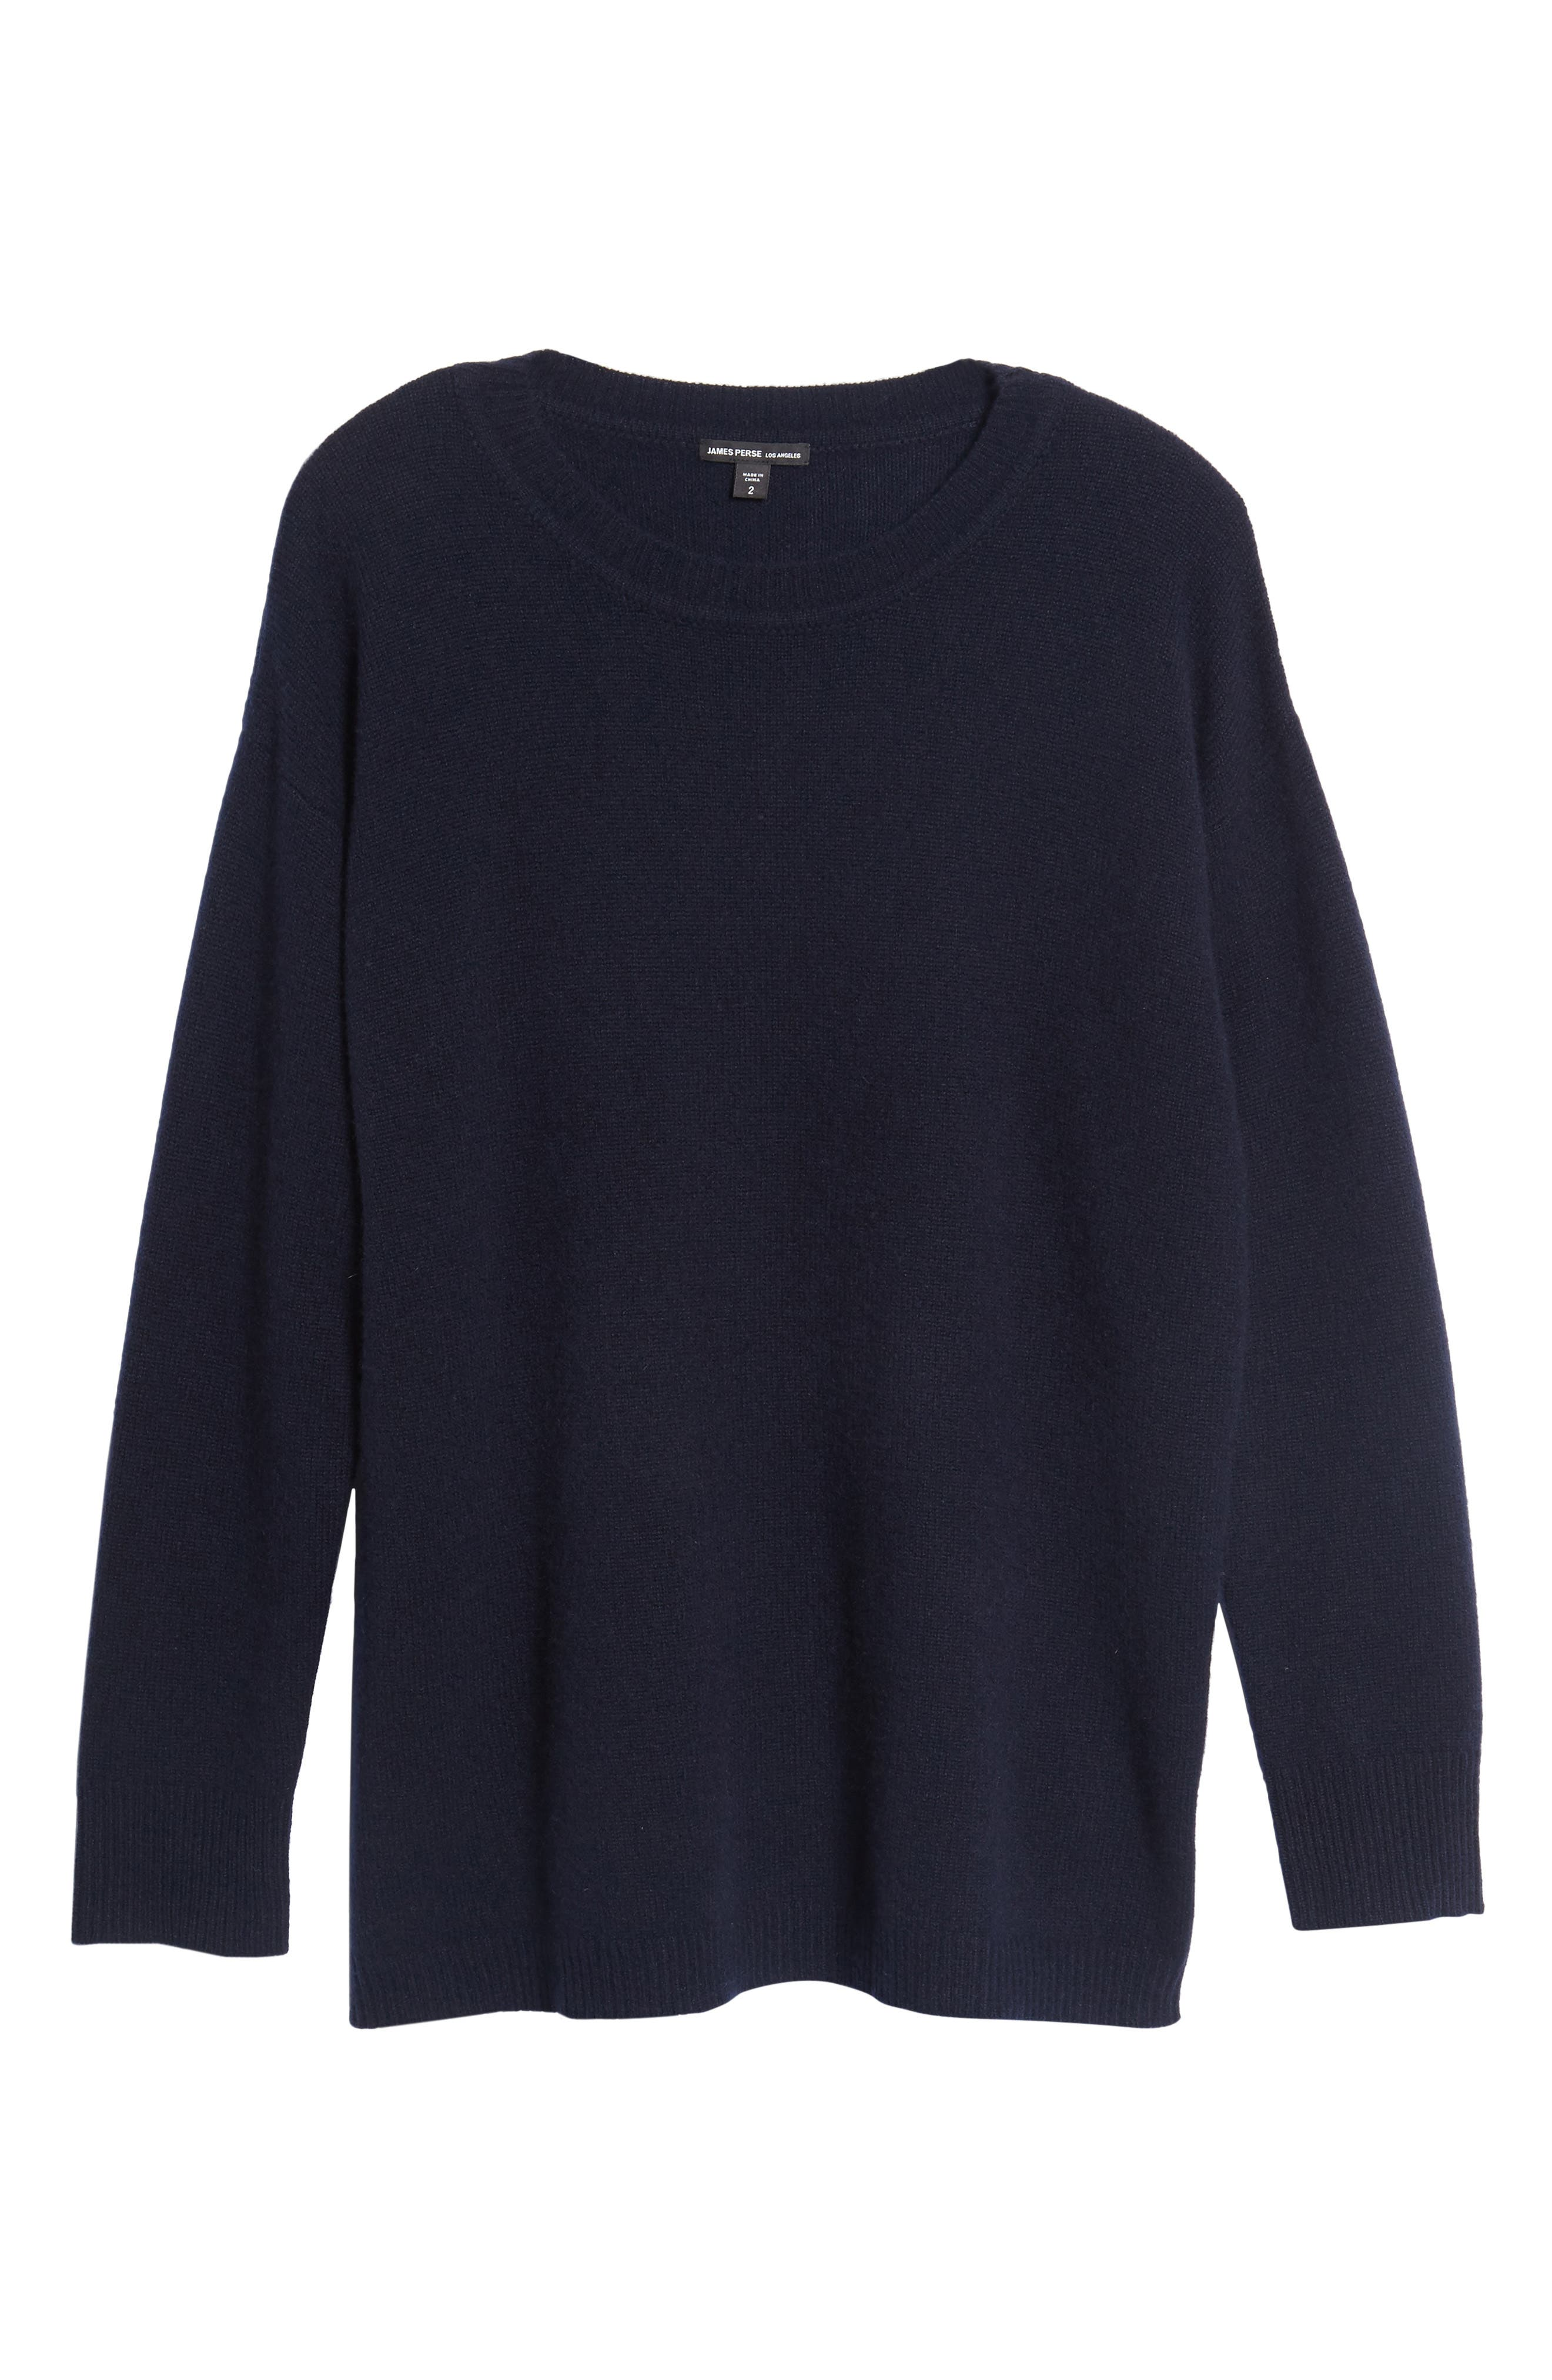 Oversize Cashmere Sweater,                             Alternate thumbnail 6, color,                             415